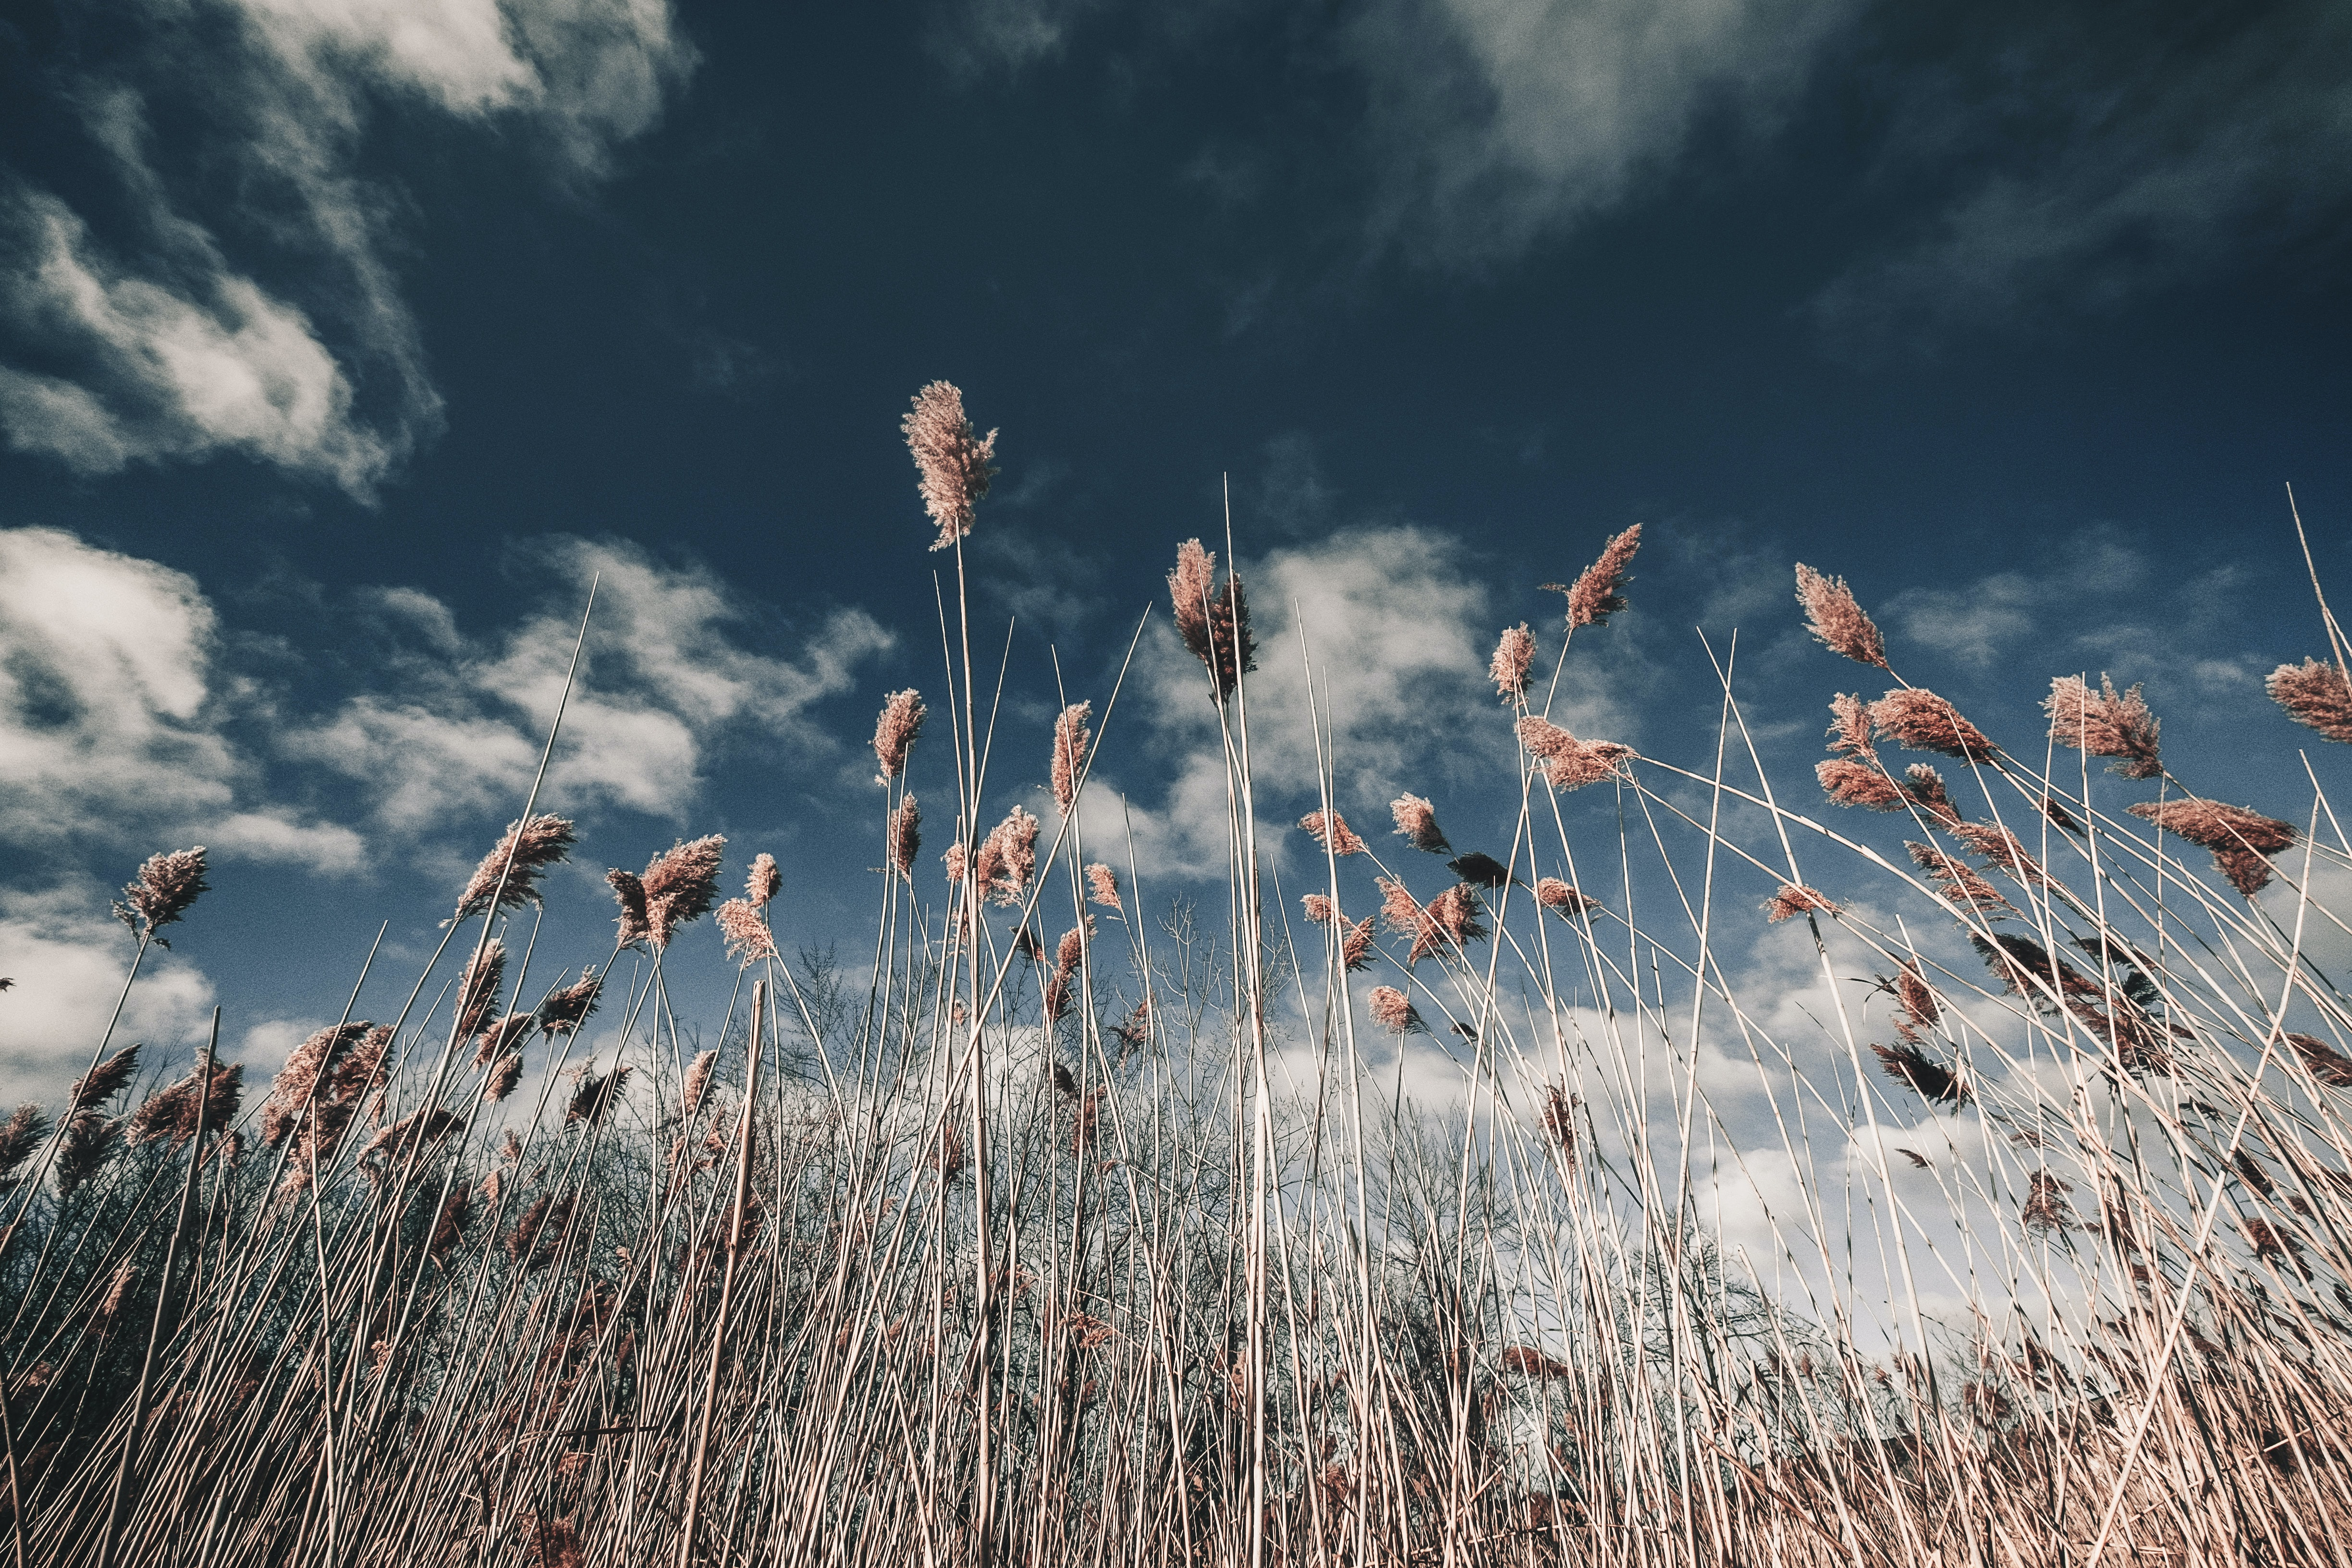 brown grasses with flowers under white clouds at daytime low angle photography